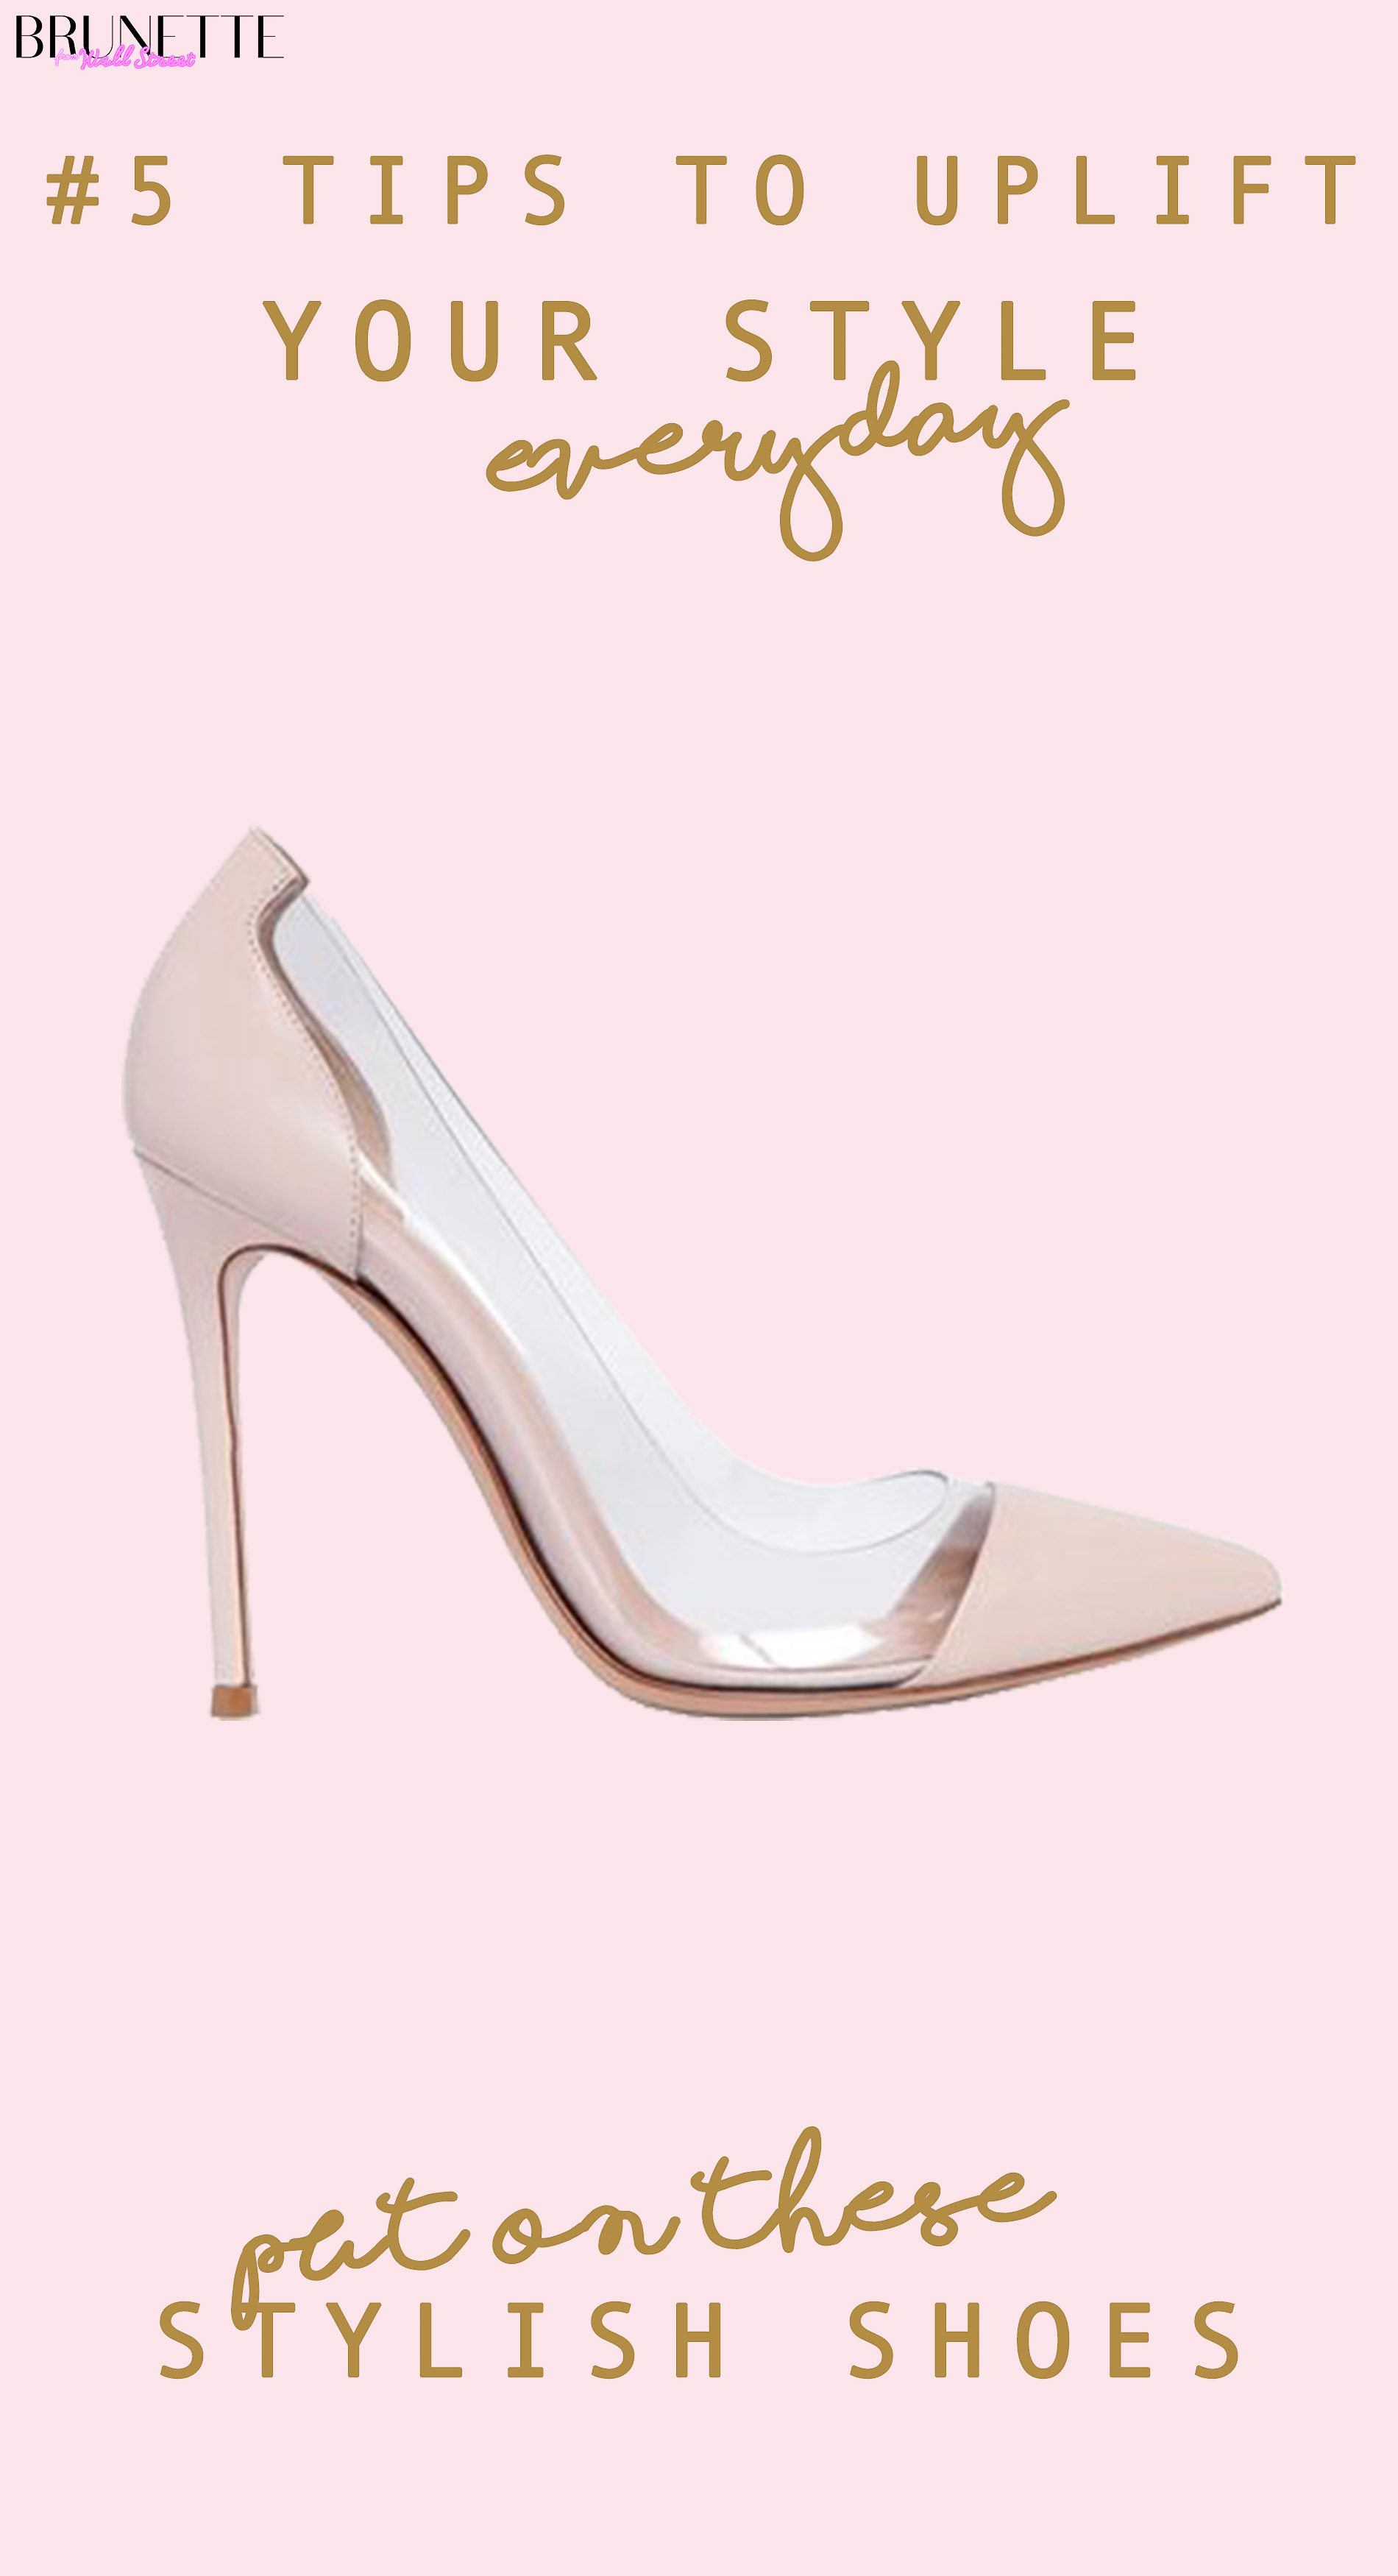 Gianvito Rossi plexi pumps with text overlay #5 Things that will instantly uplift your everyday style transparent shoes